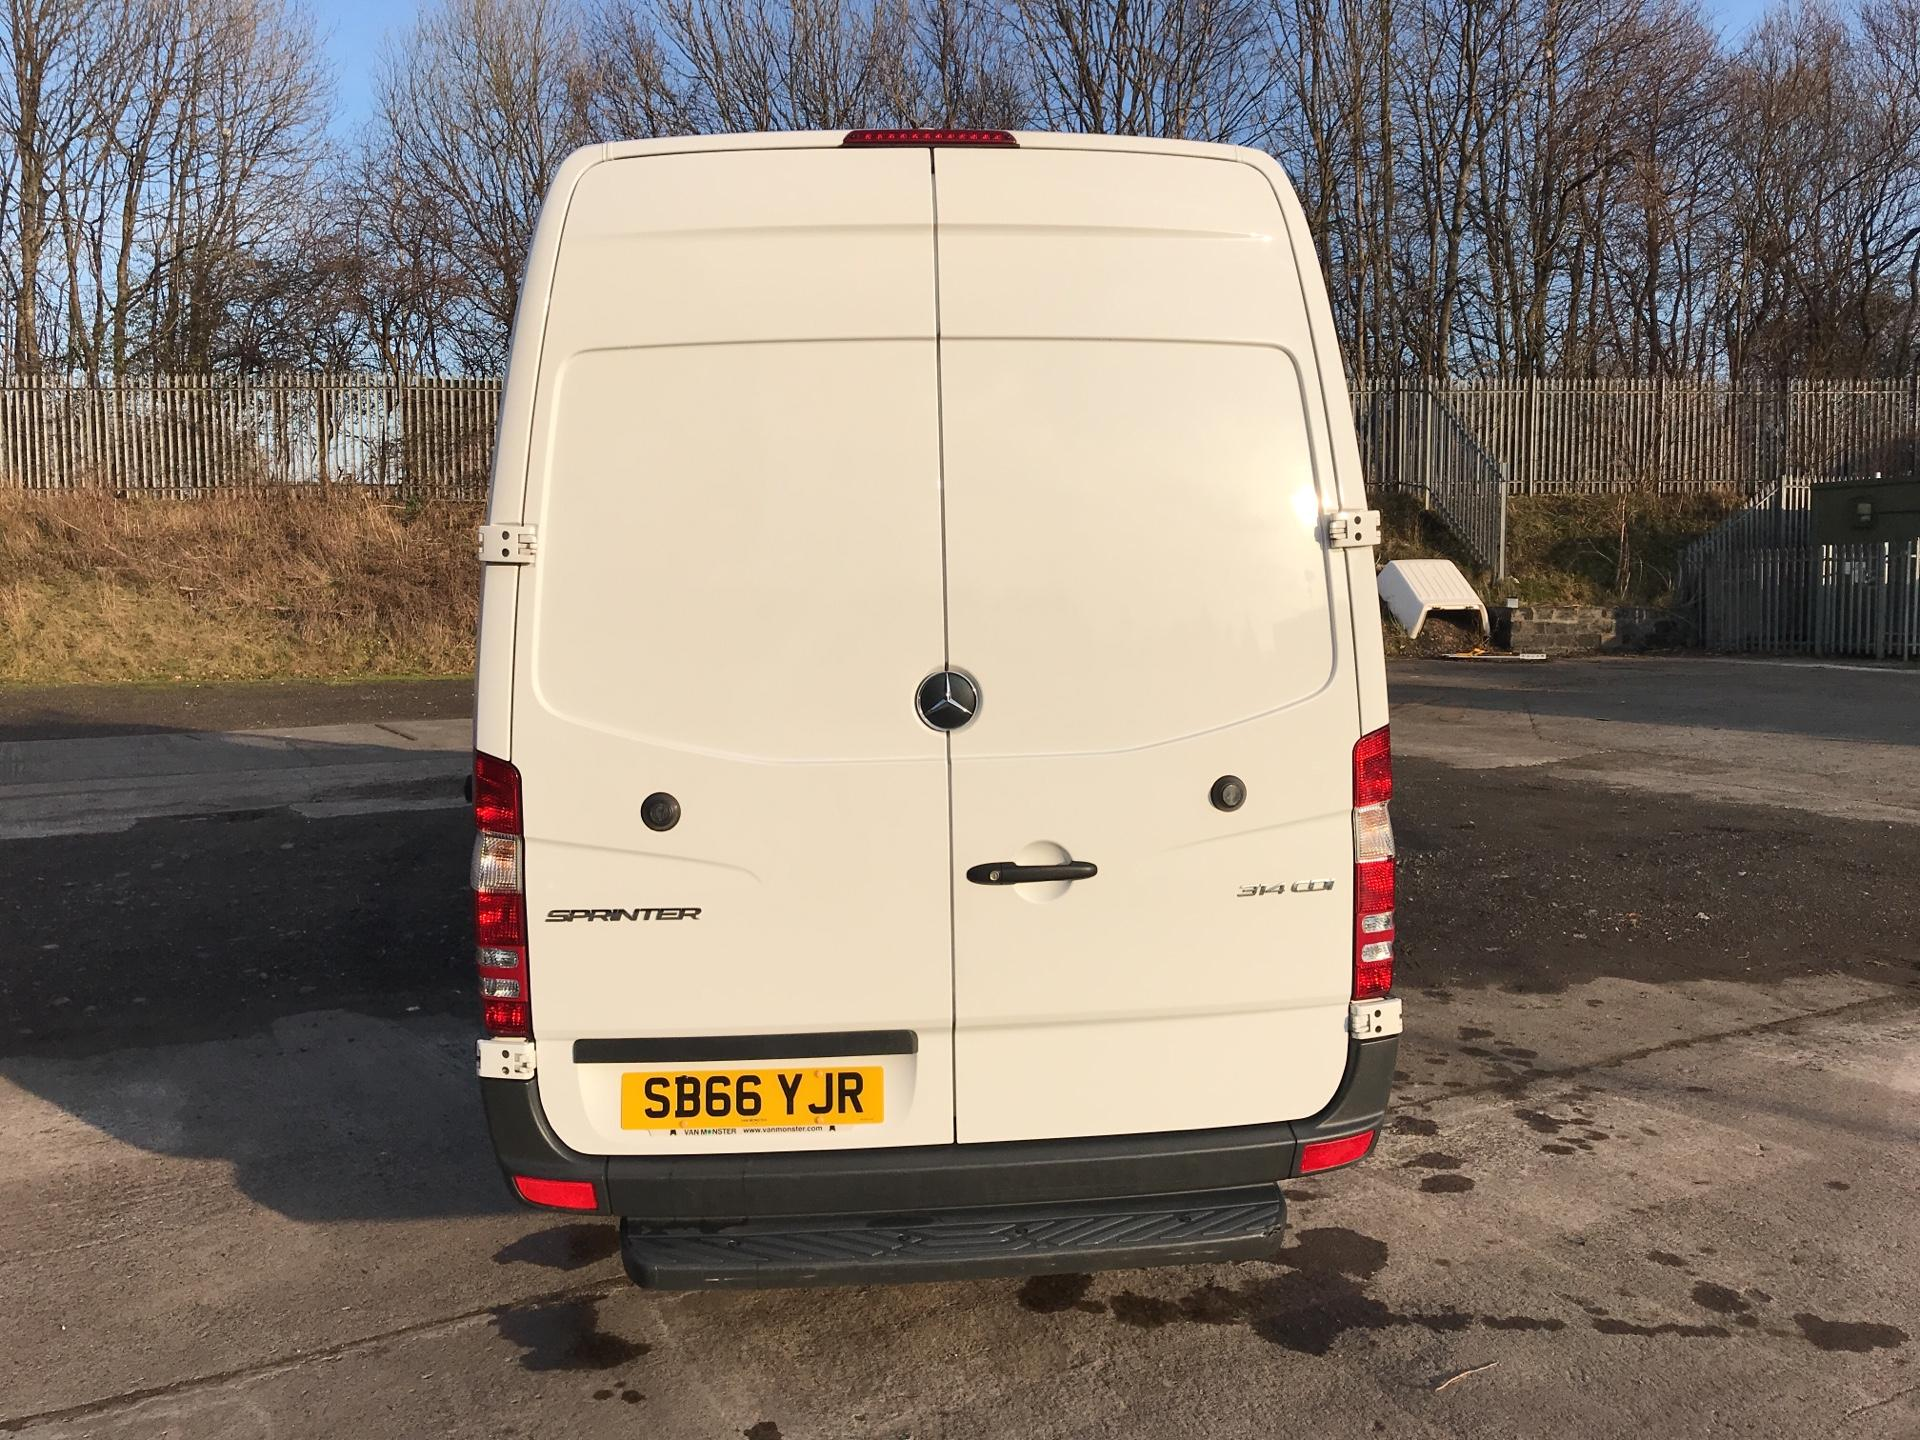 2016 Mercedes-Benz Sprinter 314 CDI LWB HIGH ROOF VAN EURO 6 (SB66YJR) Thumbnail 4